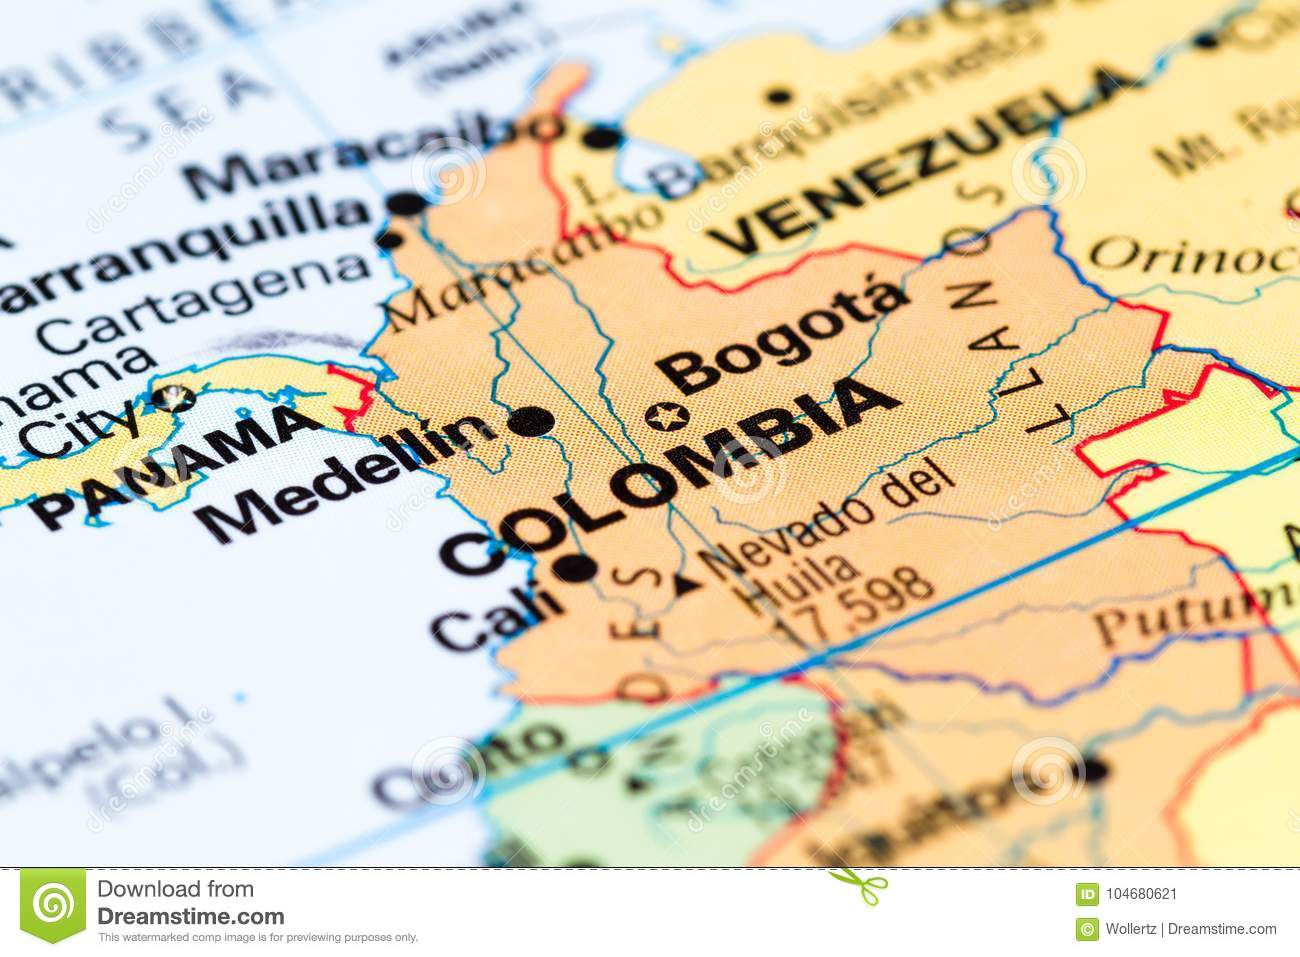 Colombia on a map stock image. Image of color, explore - 104680621